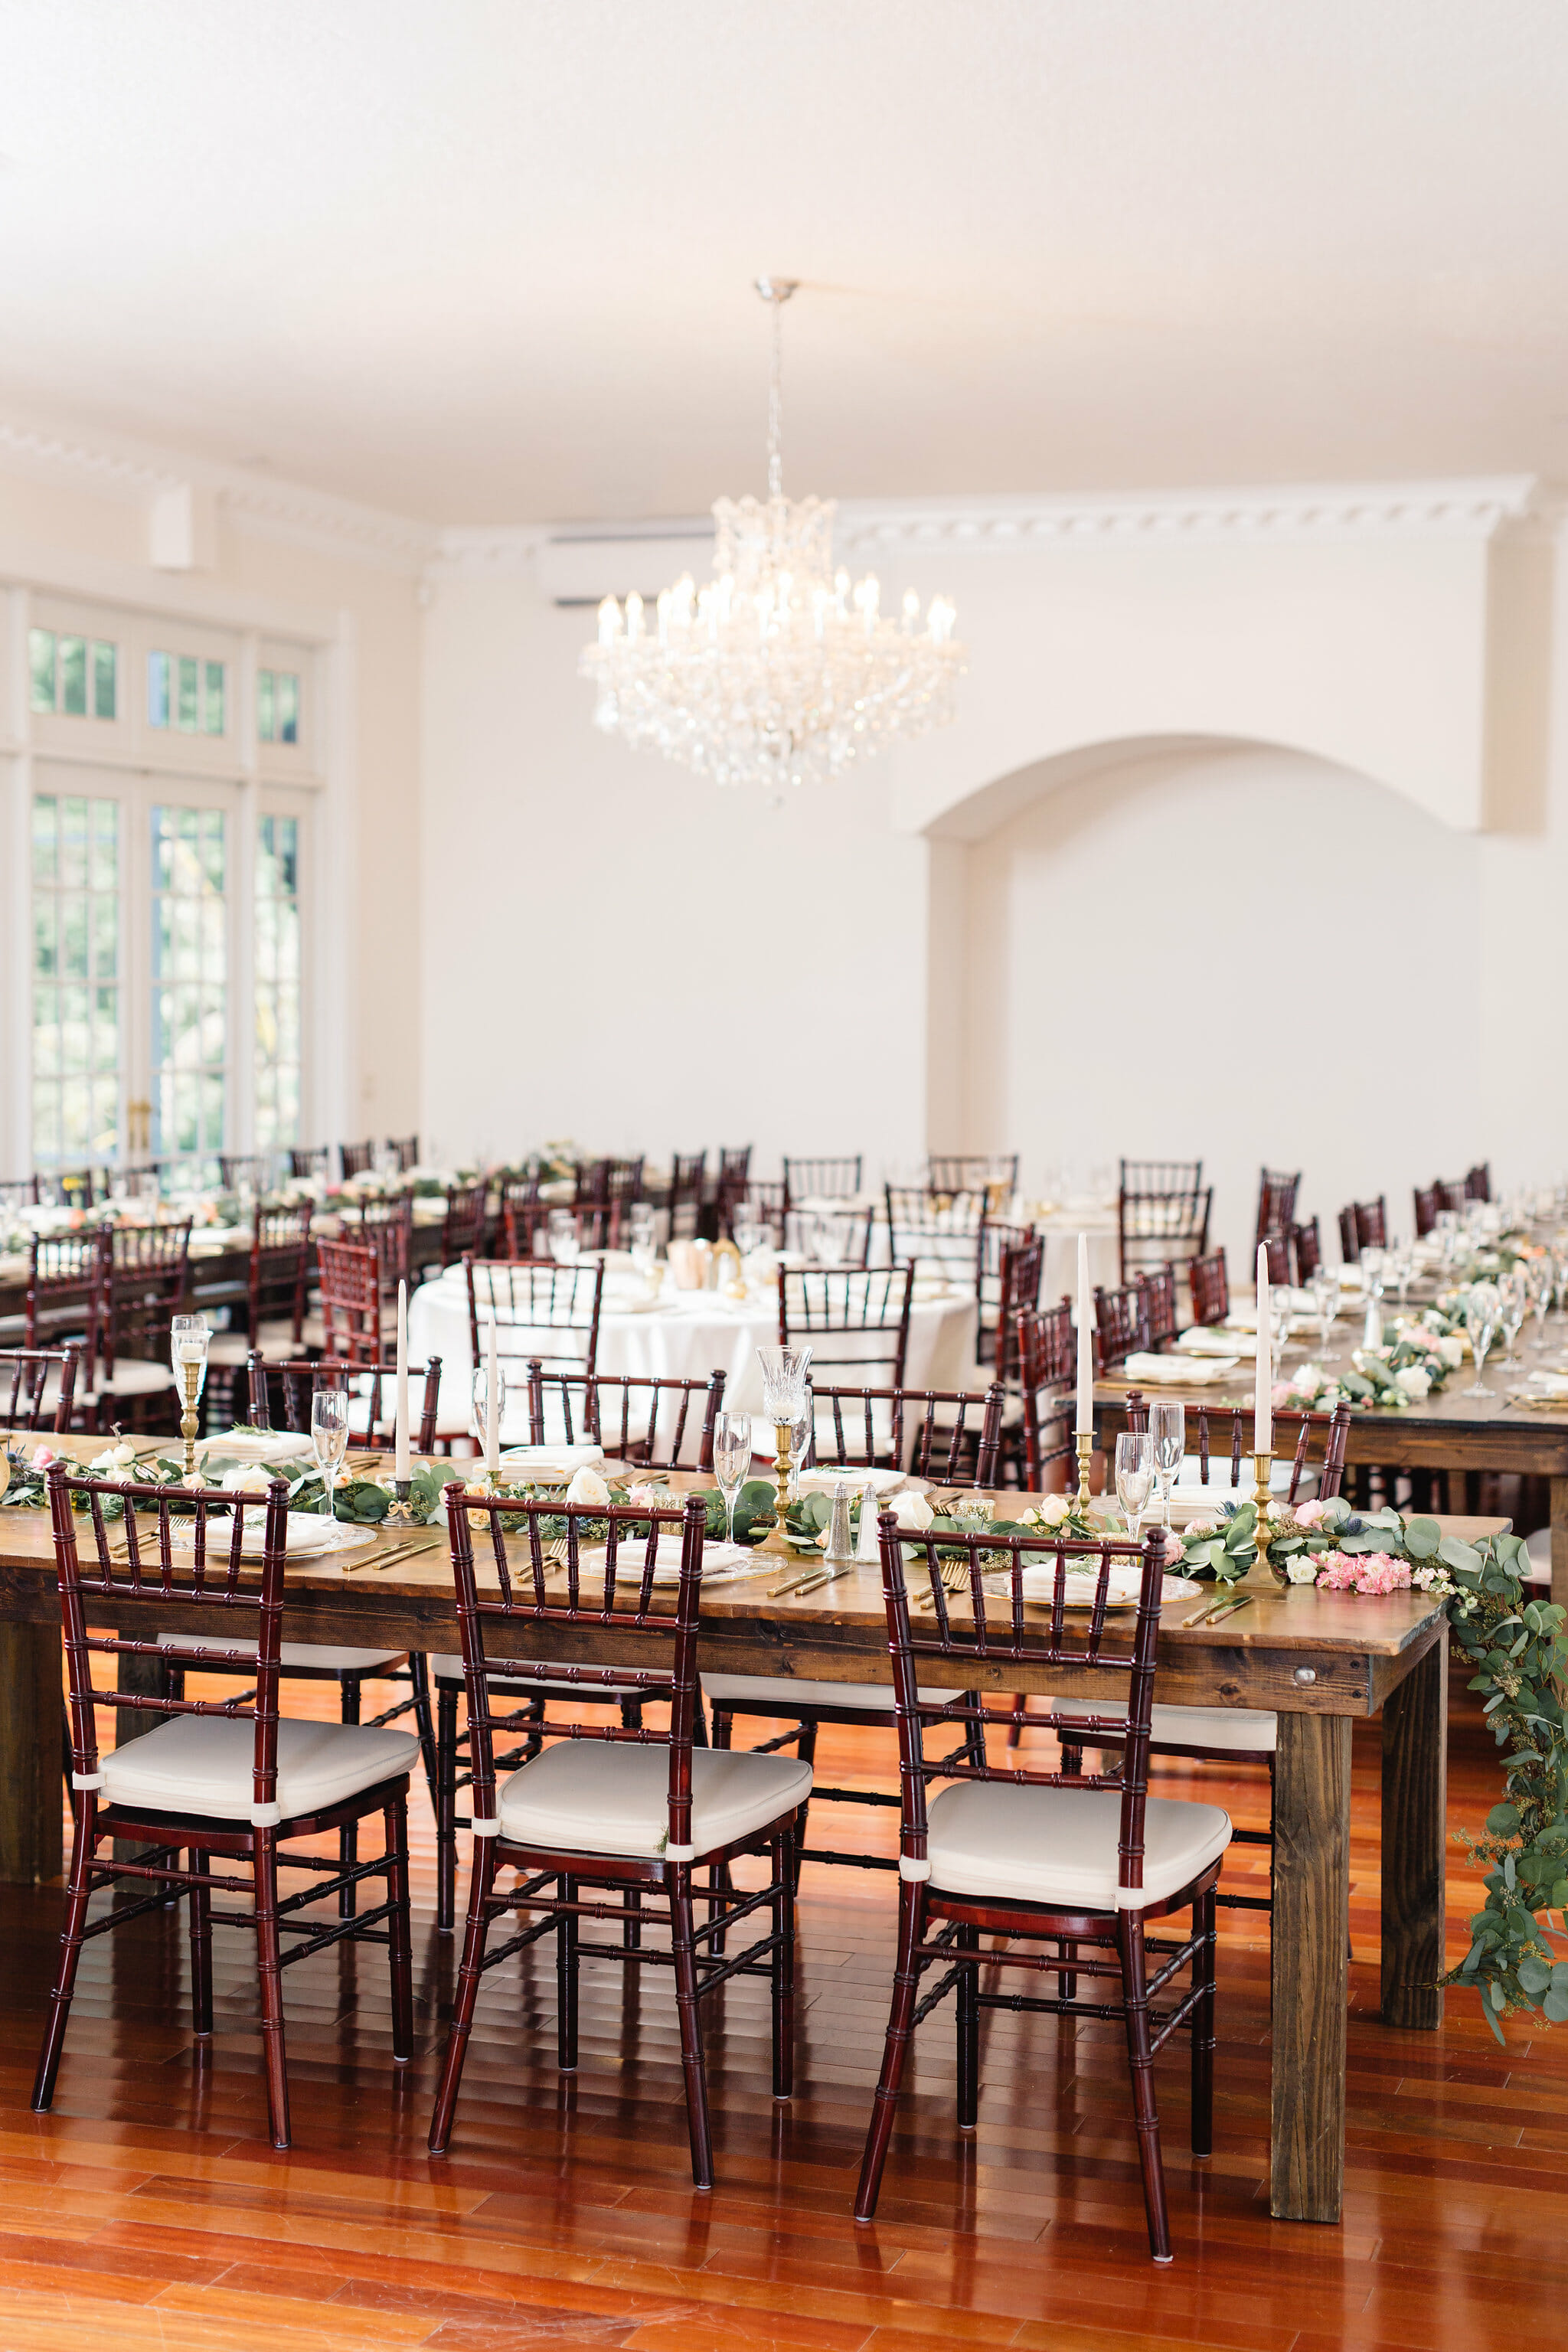 LuxmoreGrandeEstate_orlando_wedding_venue (2)